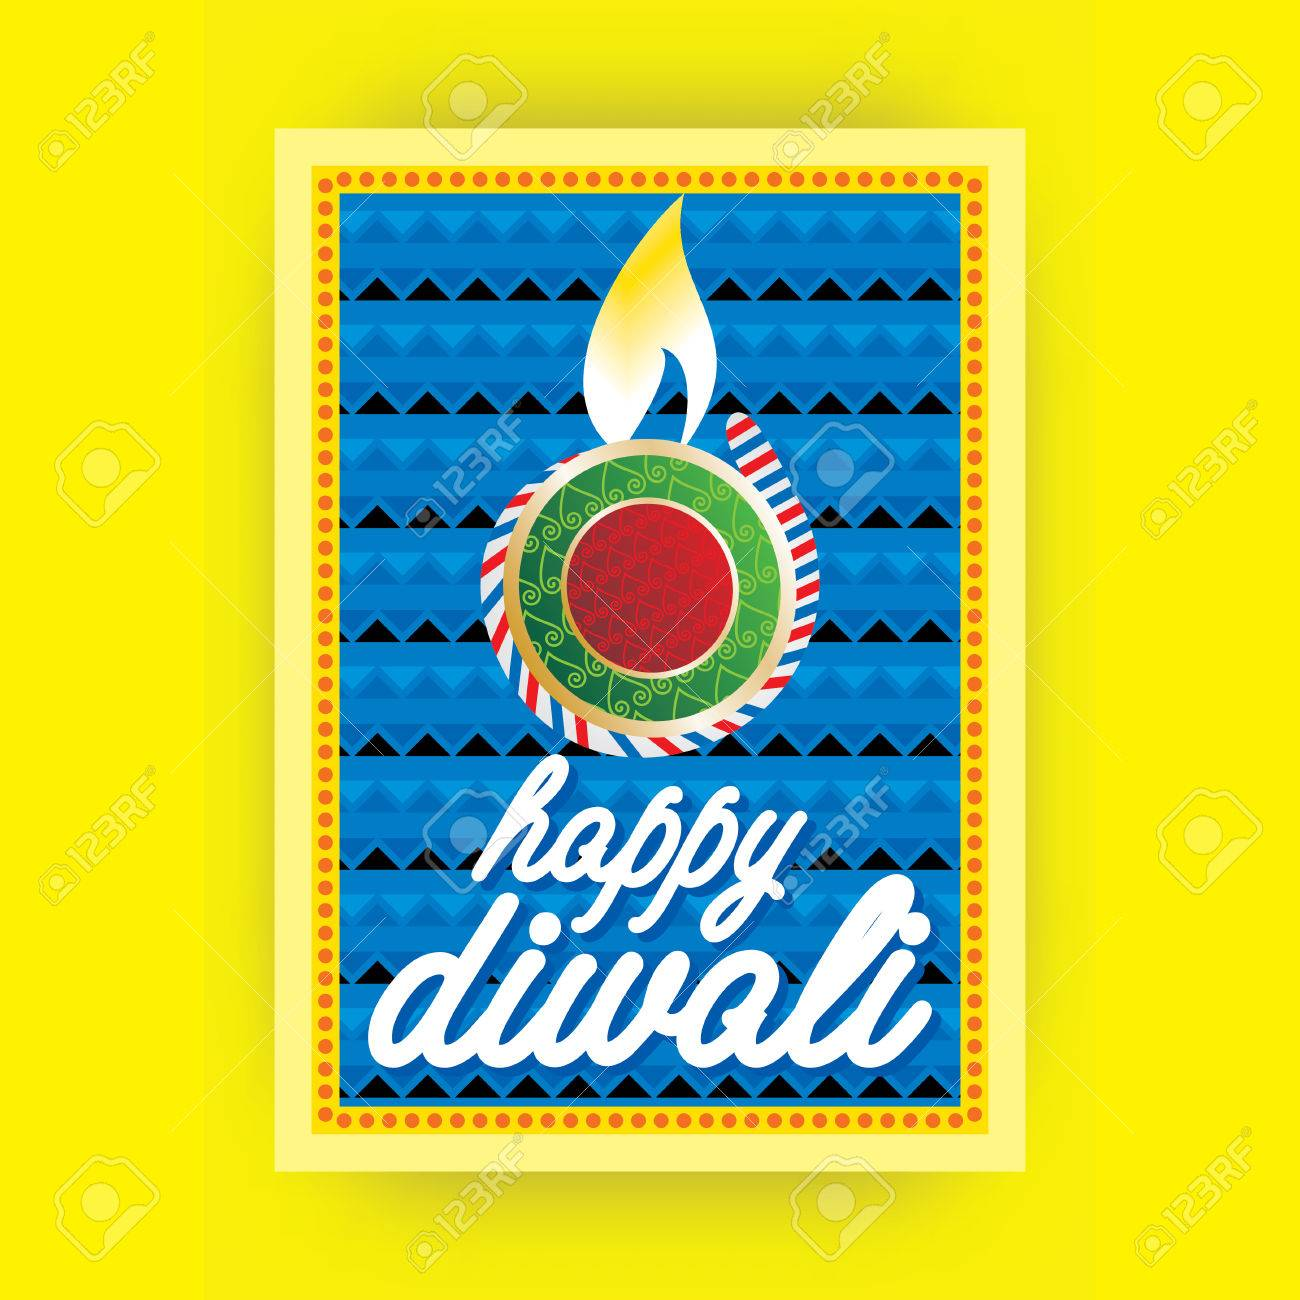 Creative Diwali Greetings Card Concept Royalty Free Cliparts